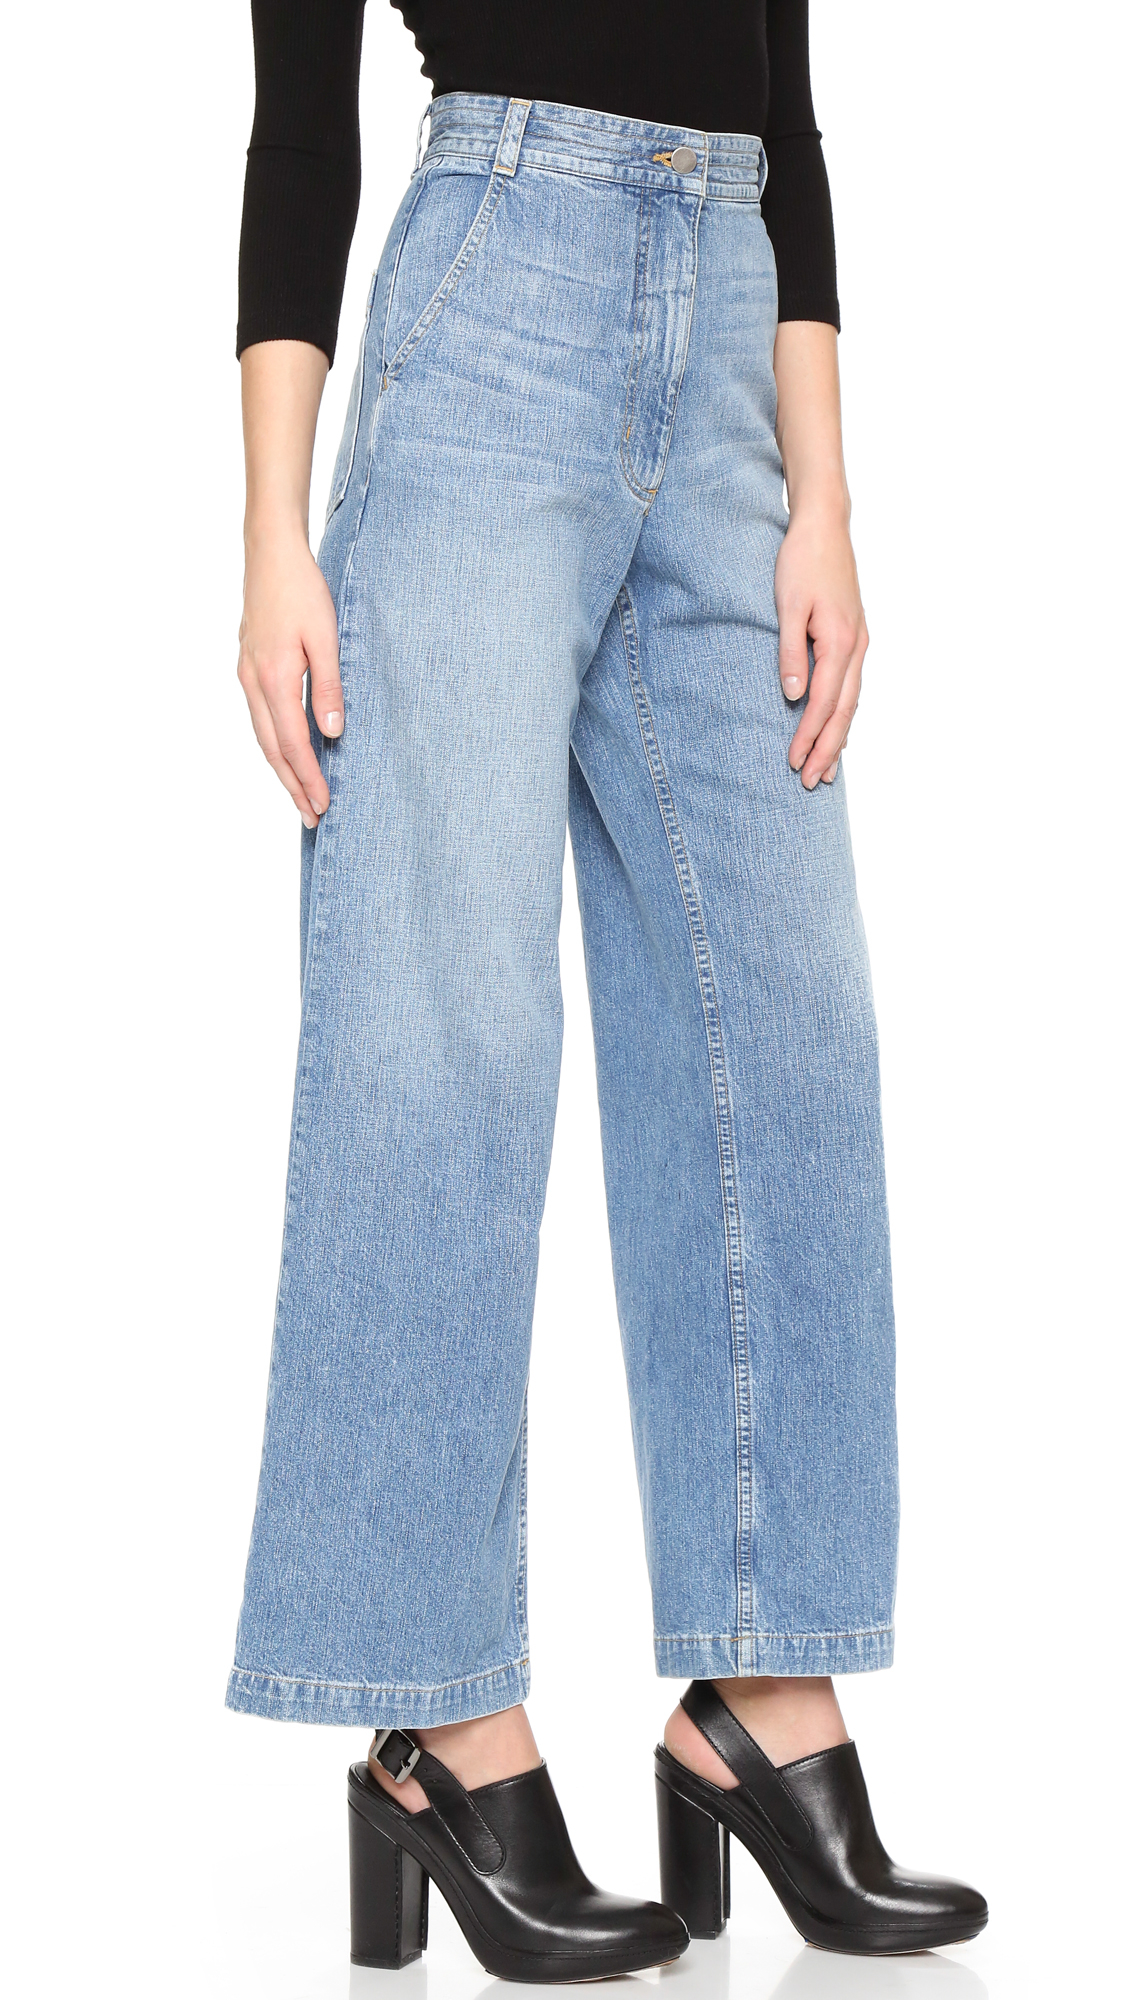 DENIM - Denim trousers Rachel Comey Buy Cheap Fast Delivery Clearance New Arrival Shop For Clearance Big Discount vZINg1